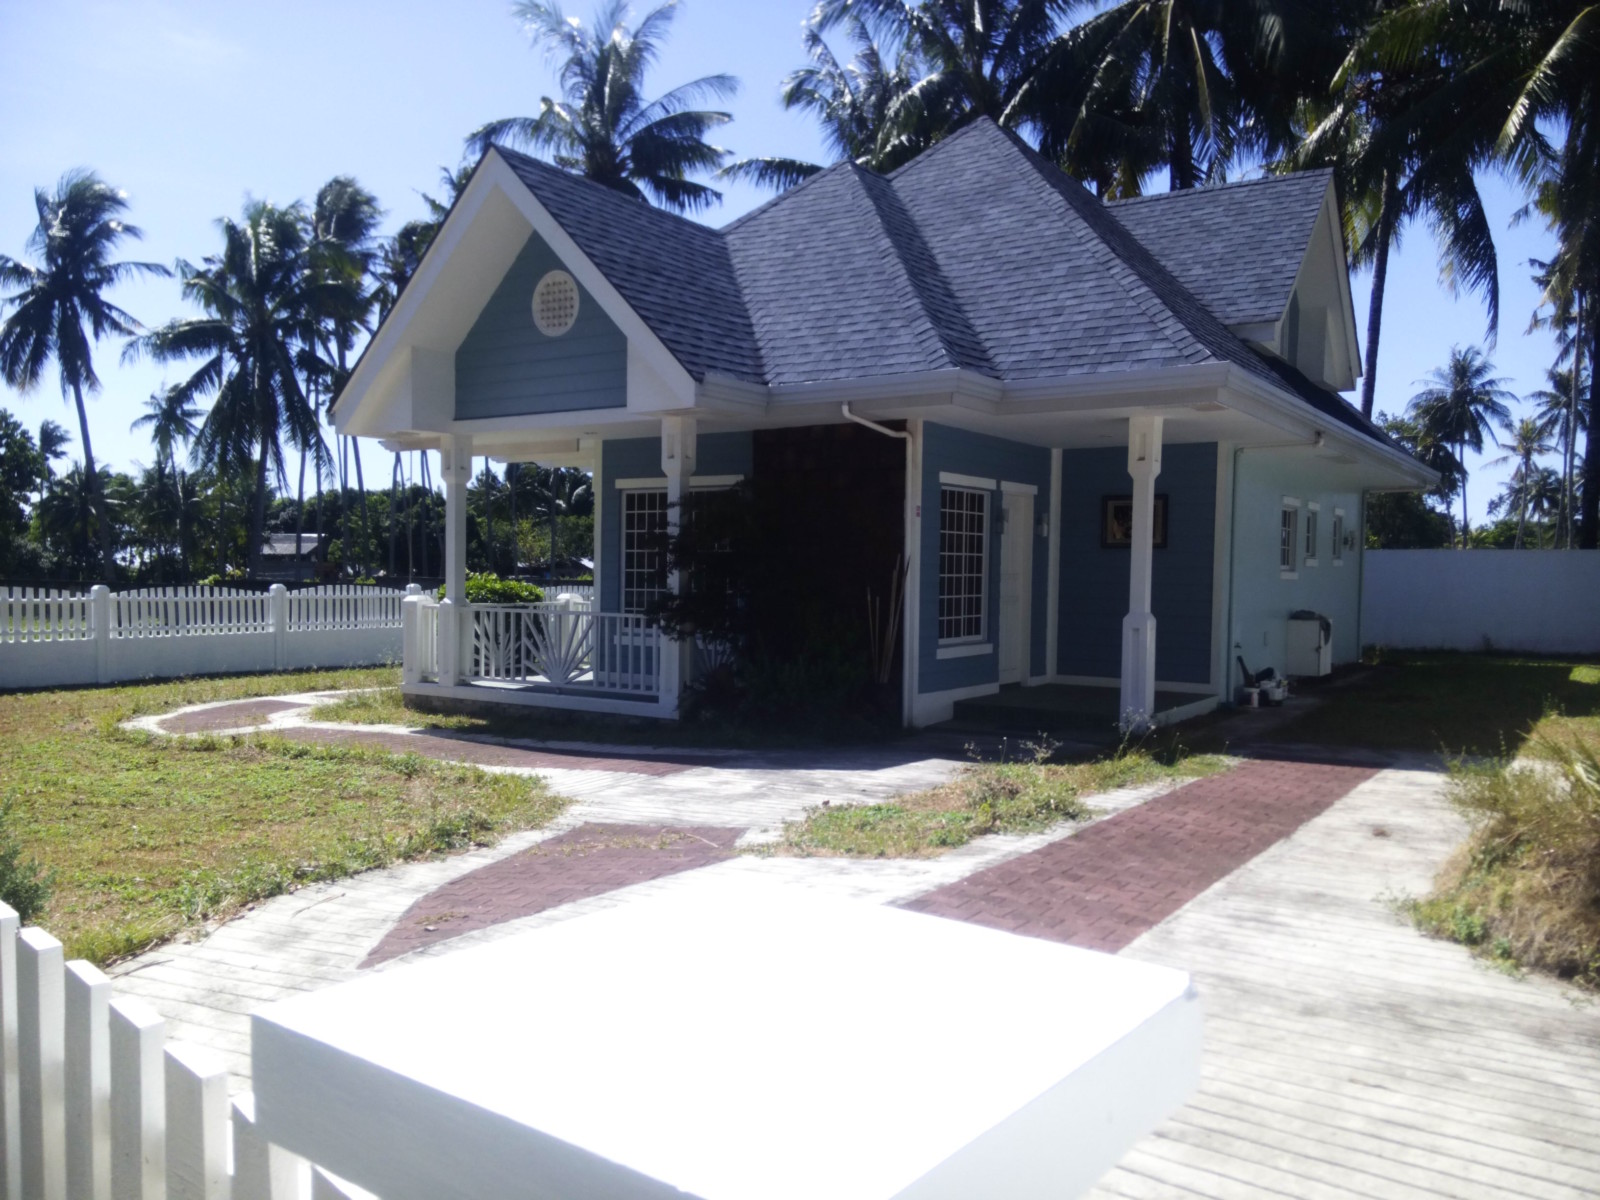 HOUSE AND LOT FOR SALE NEAR BEACH